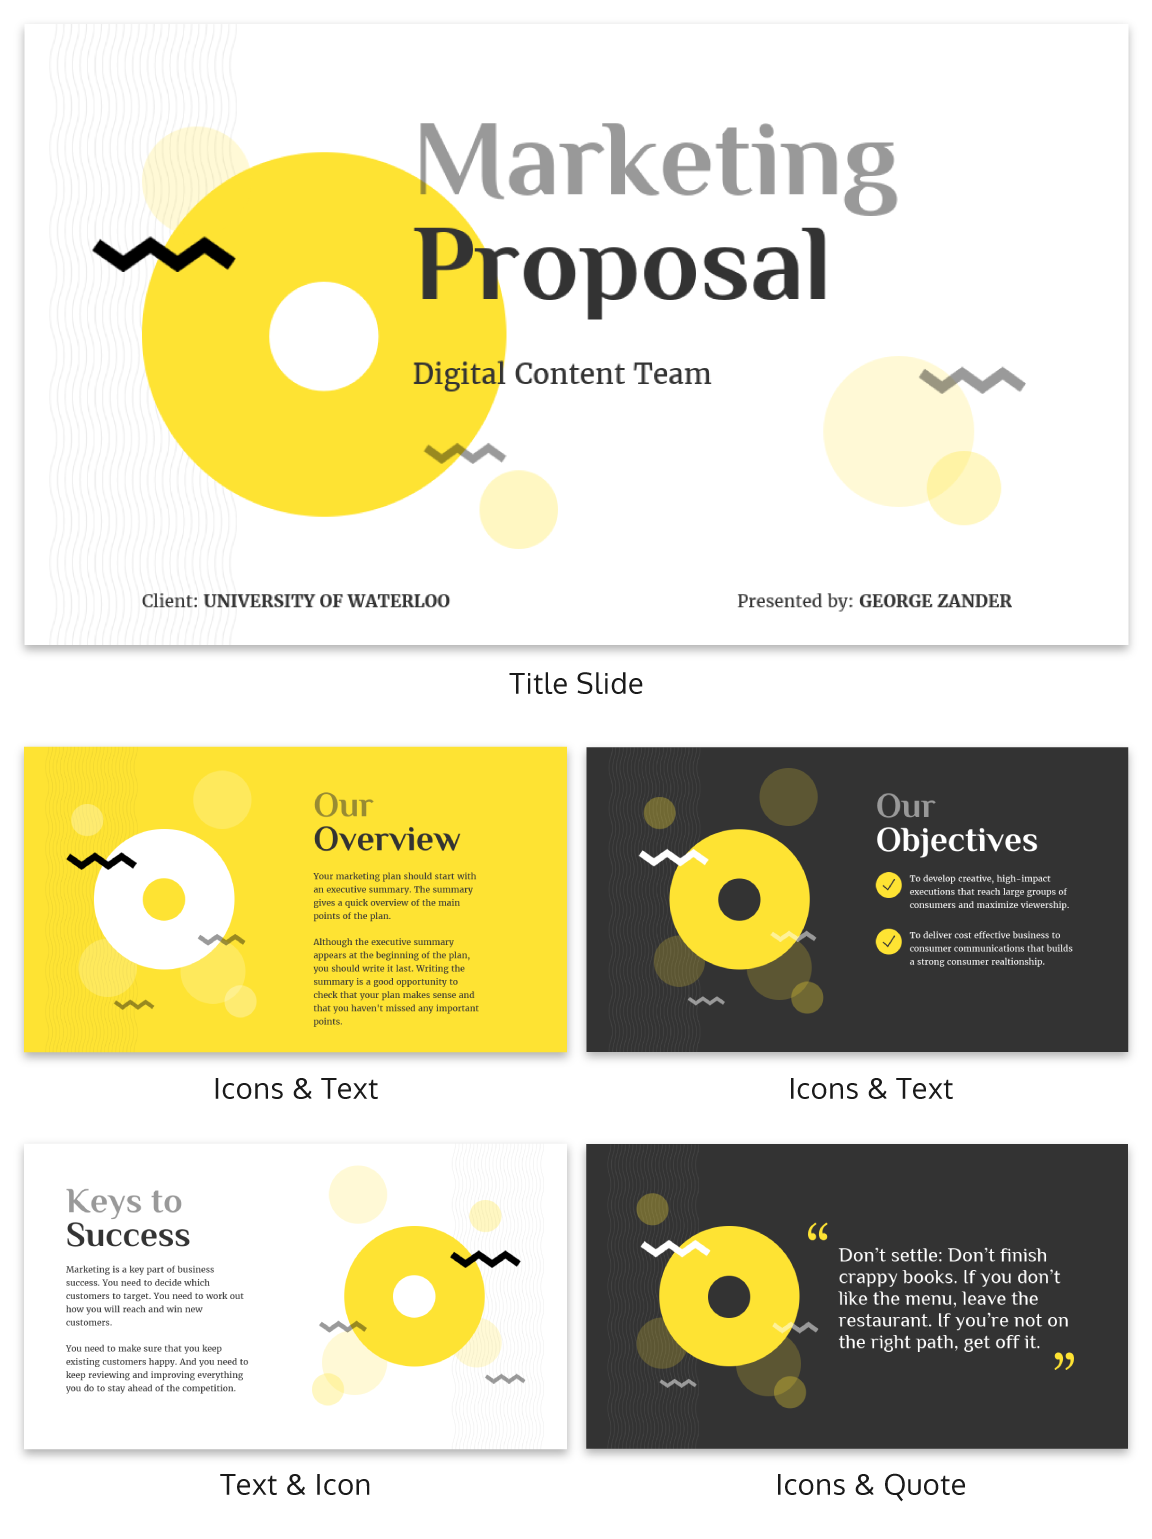 Zig Zag Marketing Proposal Business Presentation Template